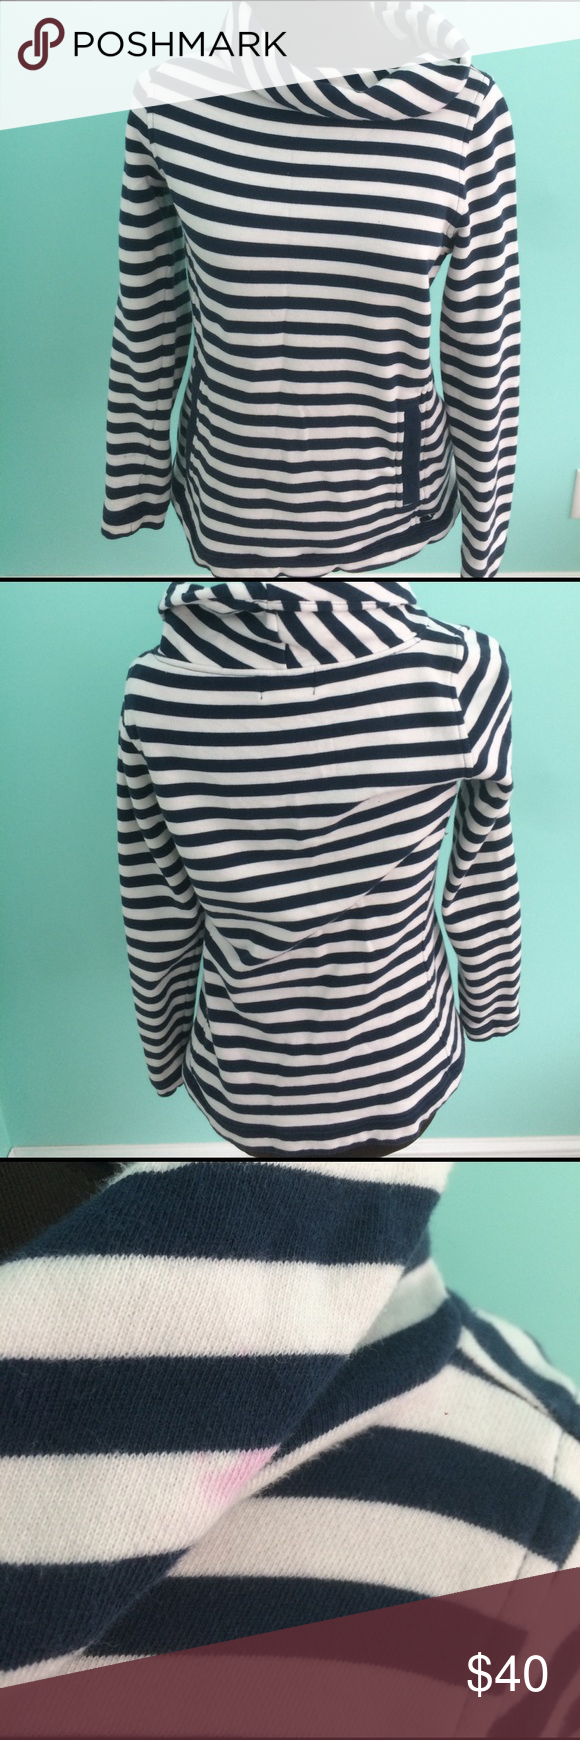 Vineyard Vines striped cowl neck sweater- xxs Navy and white striped cowl neck sweater. Super comfy for lounging around. Small pink mark on cowl neck (shown in picture) .. easy to fold cowl neck over and not to be seen Vineyard Vines Tops Sweatshirts & Hoodies